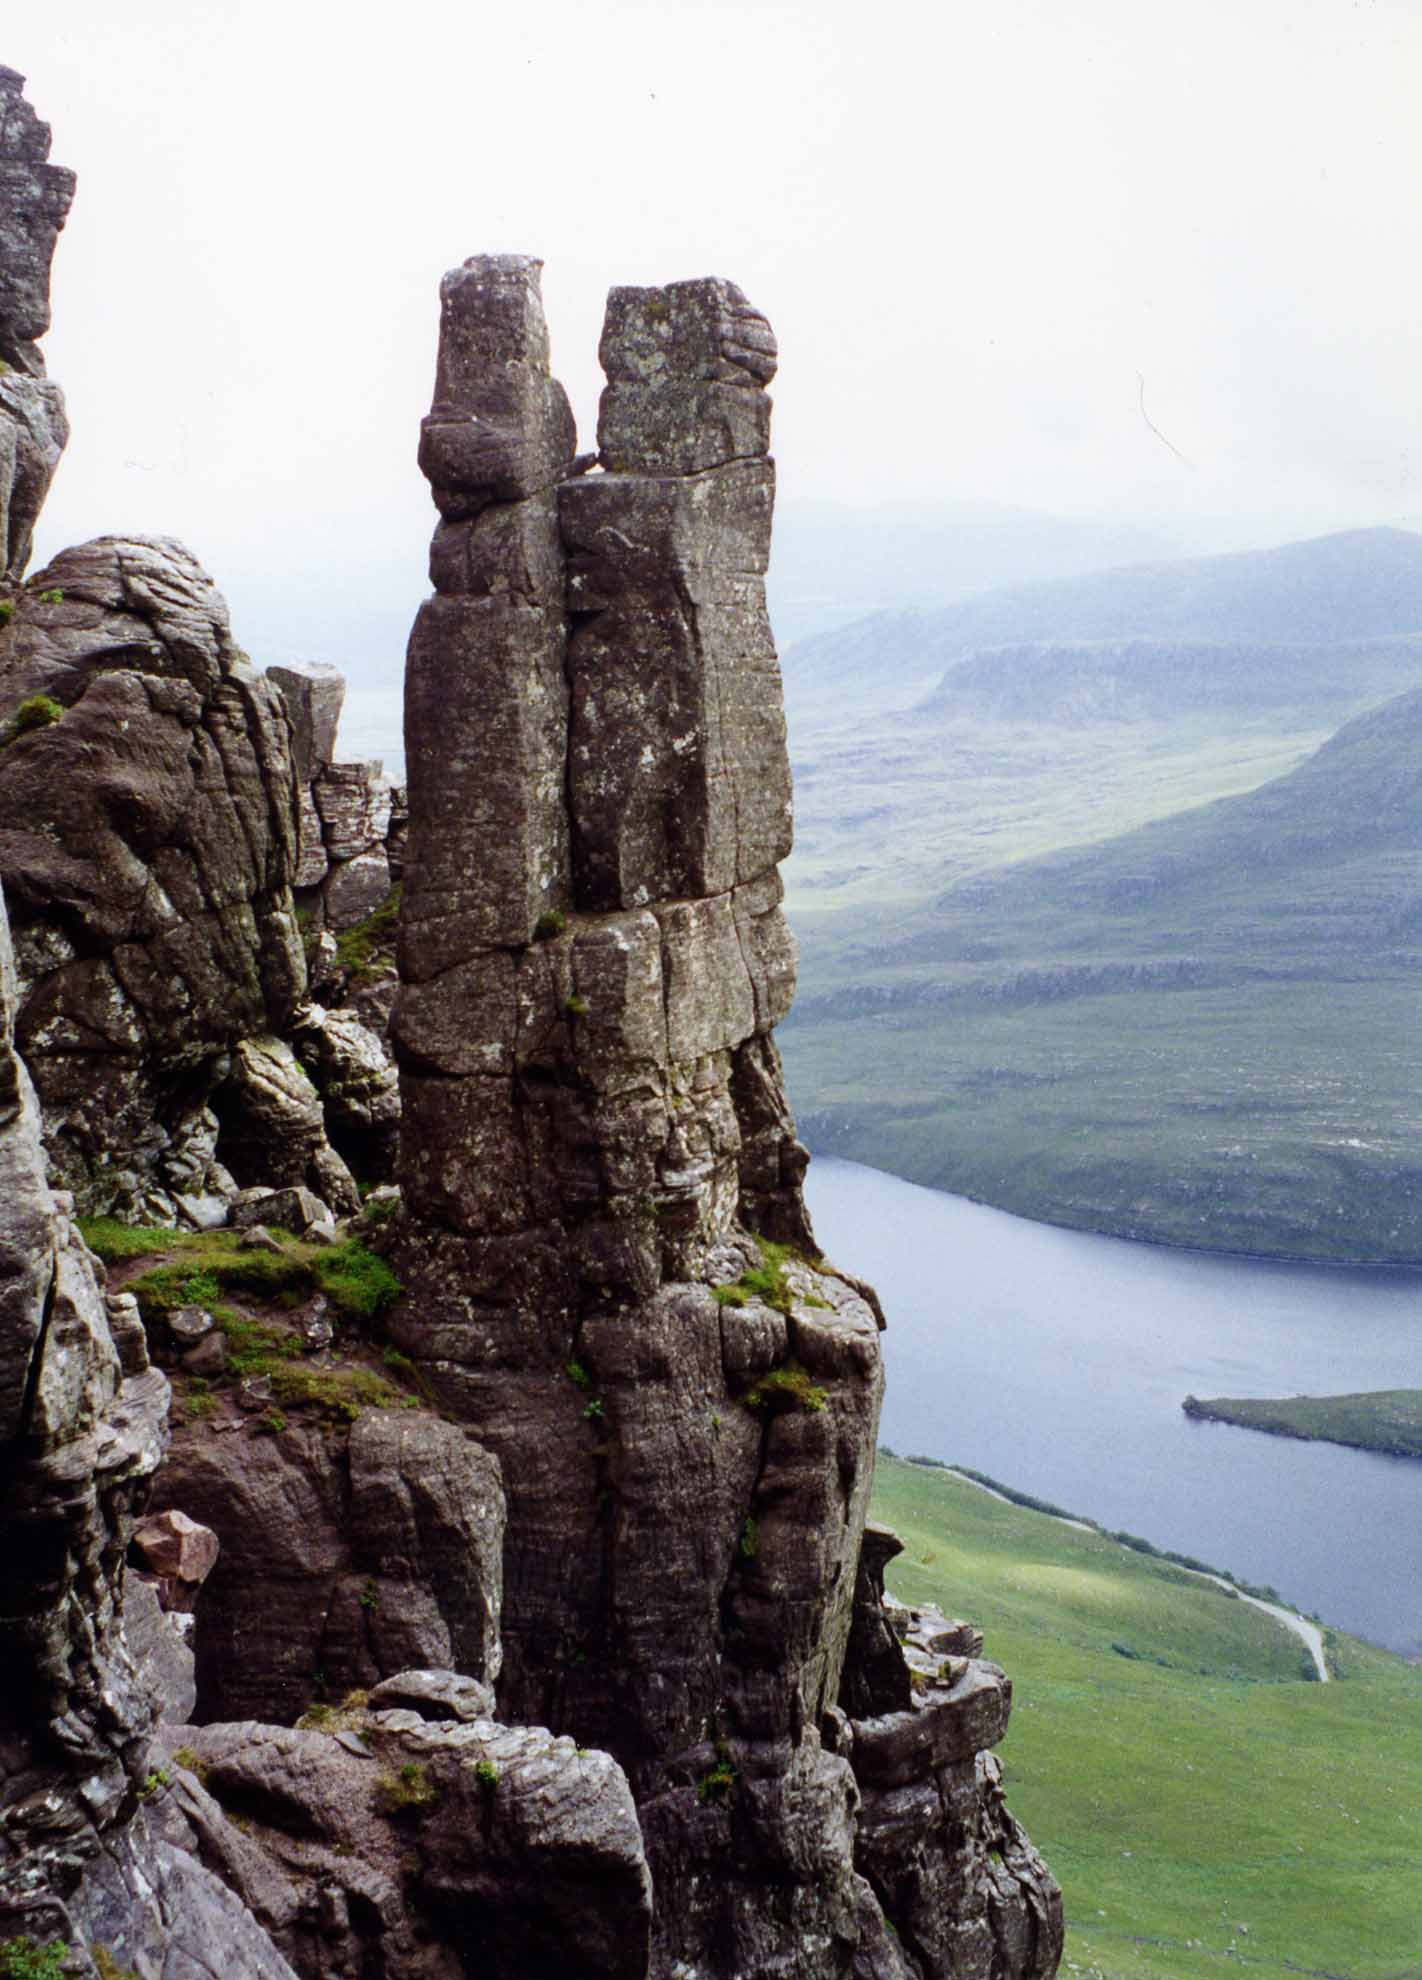 http://upload.wikimedia.org/wikipedia/commons/b/b4/Lobster_Claw_on_Stac_Pollaidh.jpg